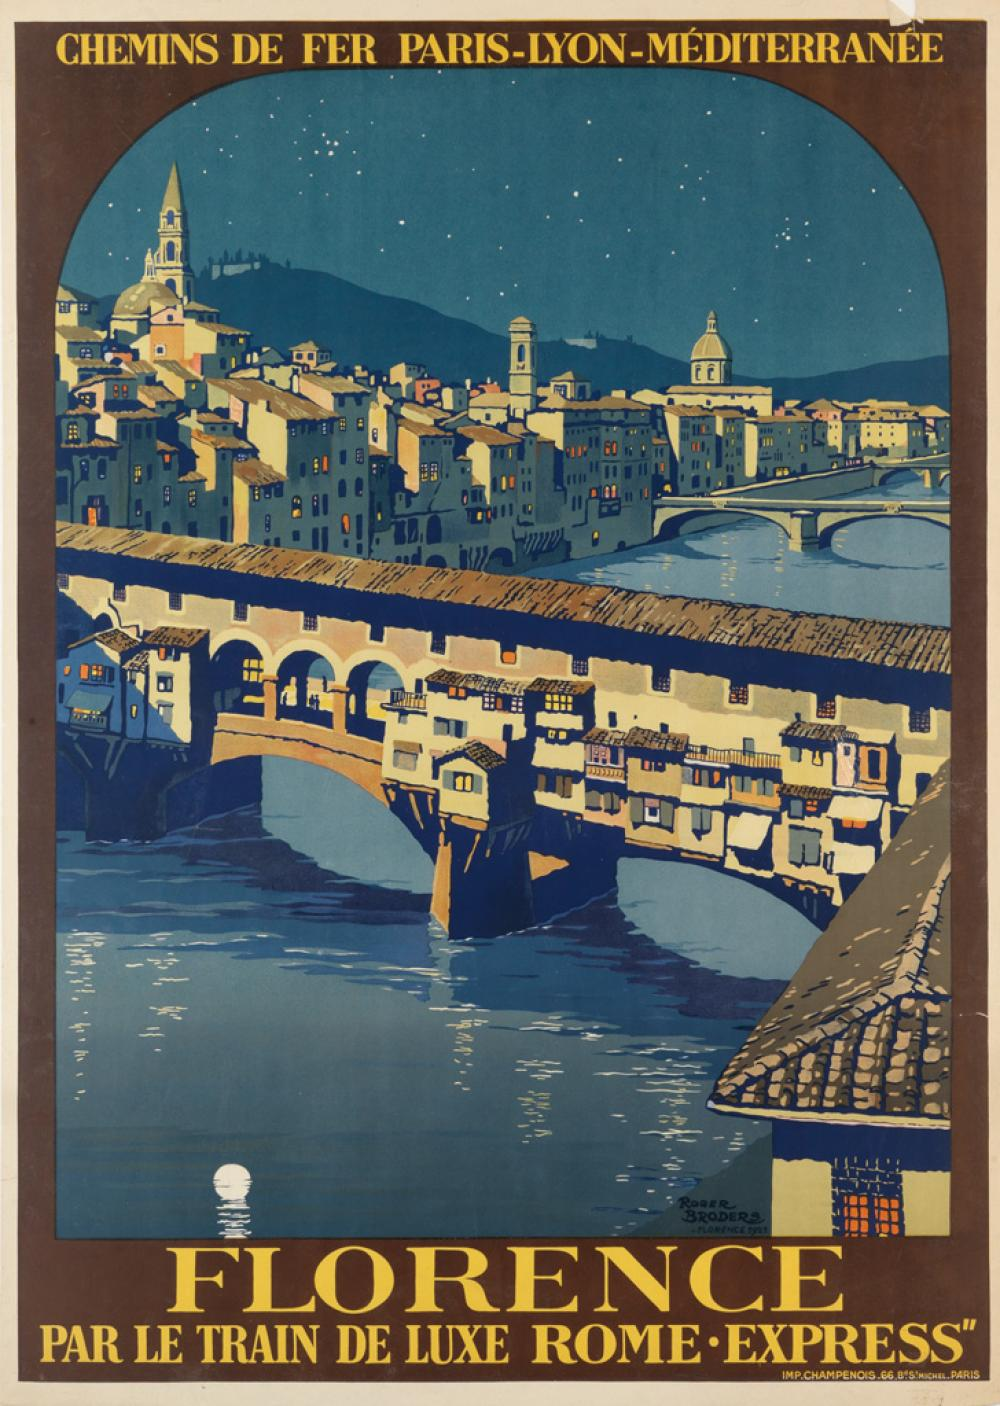 ROGER BRODERS (1883-1953). FLORENCE. 1921. 41x29 inches, 105x74 cm. Champenois, Paris.